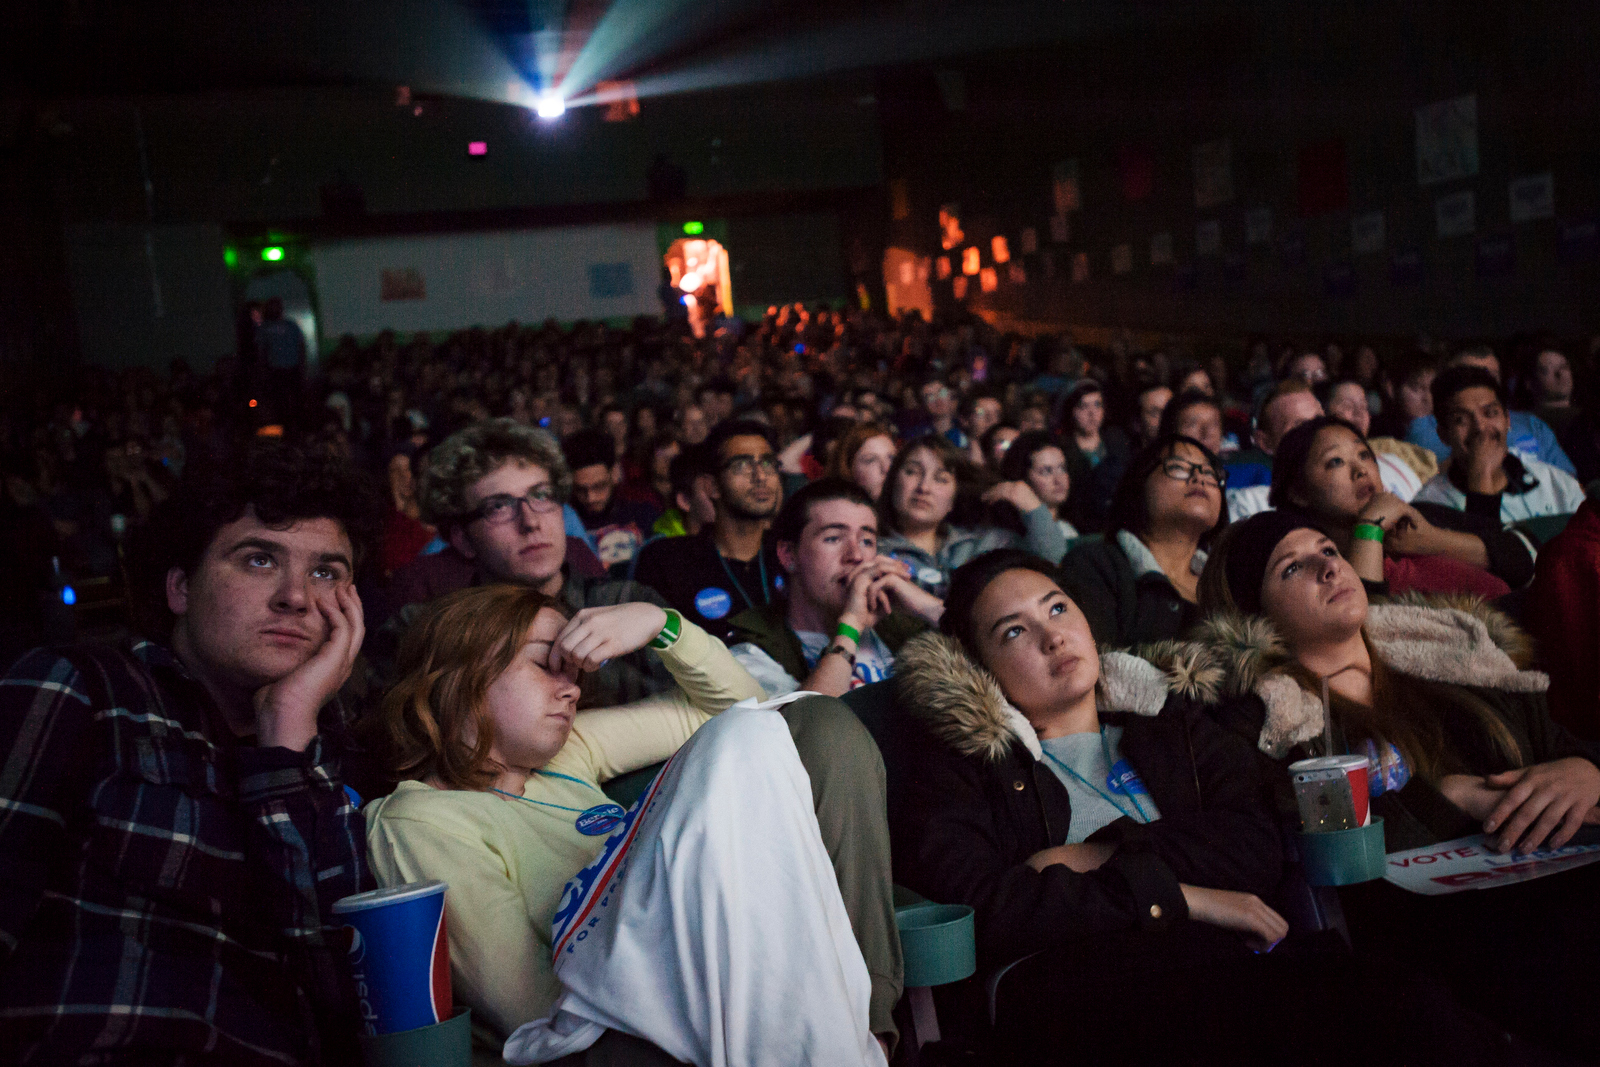 Supporters at a debate watch event in hosted by the campaign of Democratic U.S. presidential candidate Bernie Sanders in Des Moines, Iowa November 14, 2015.